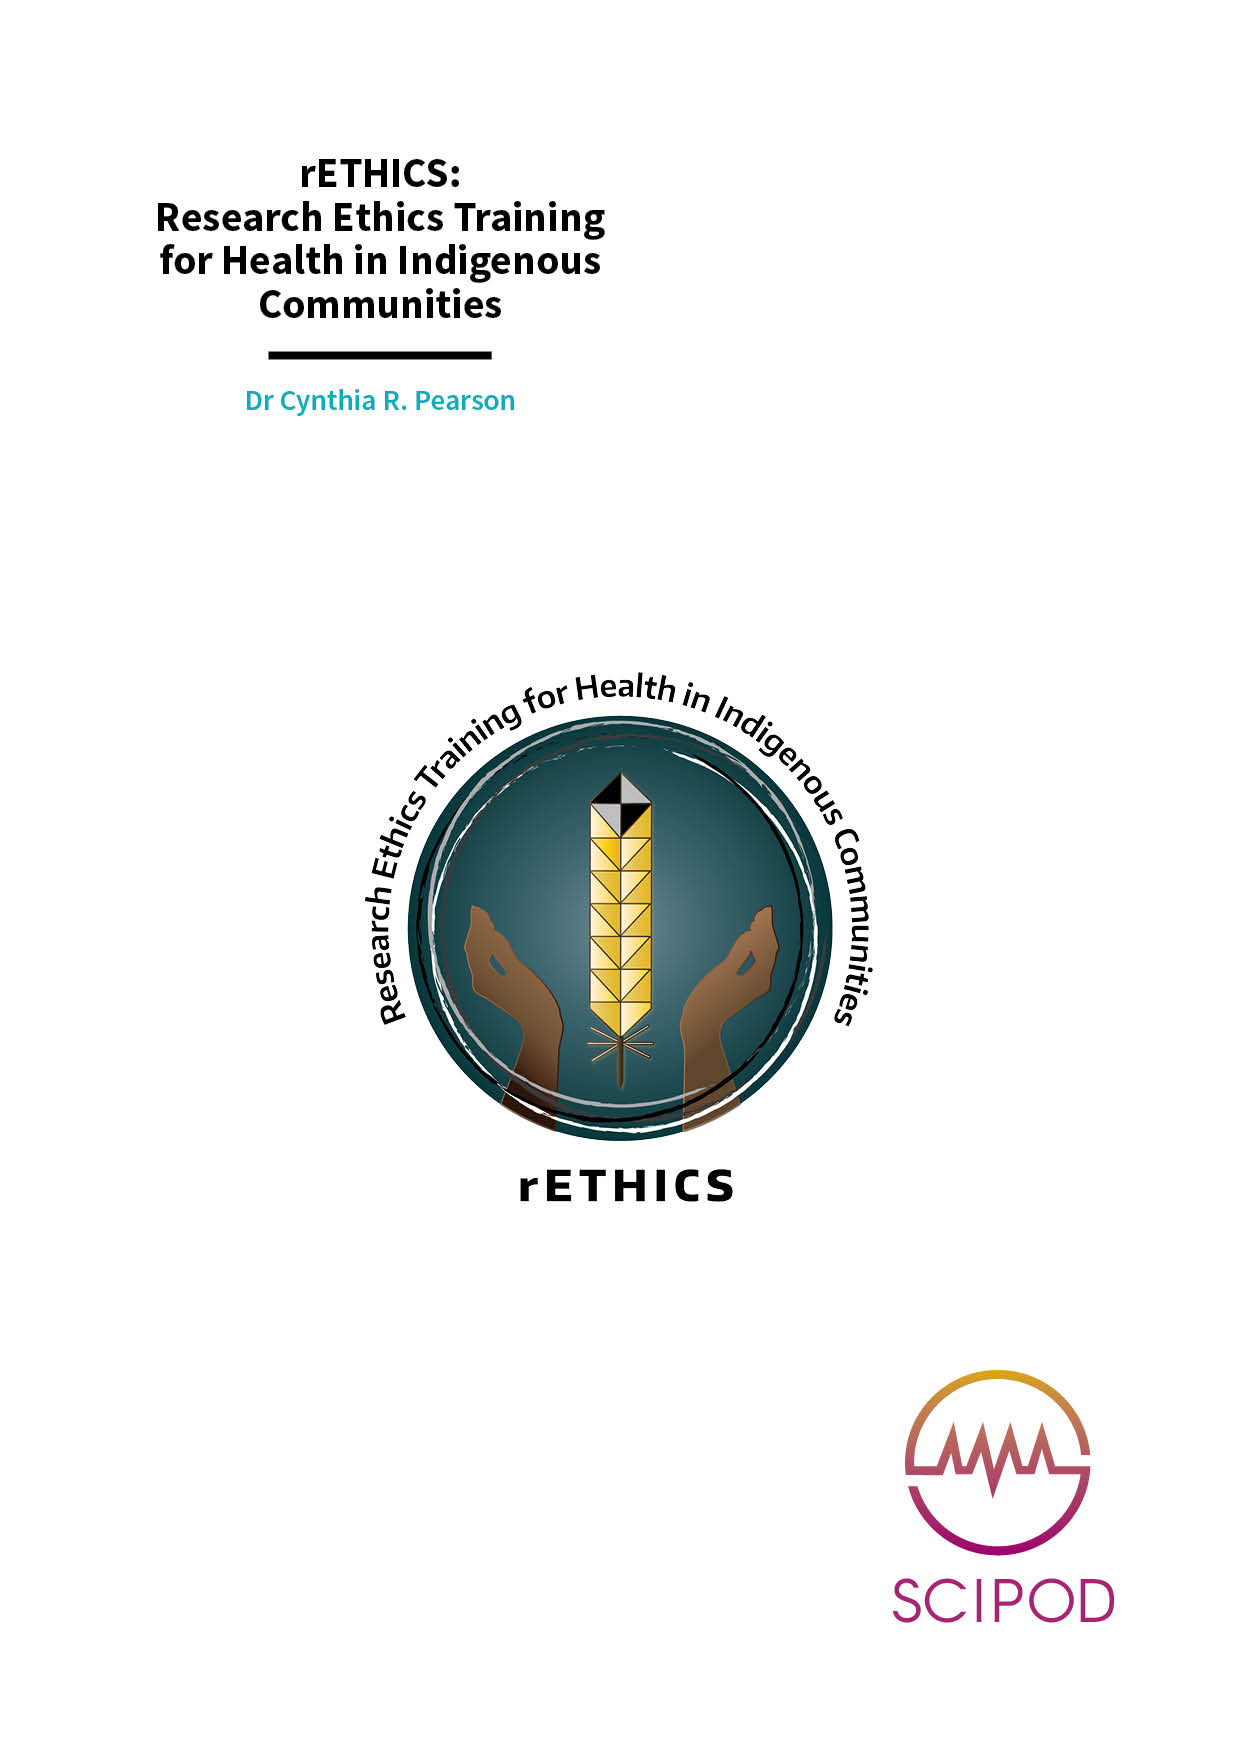 Research Ethics Training for Health in Indigenous Communities – Dr Cynthia R. Pearson, University of Washington